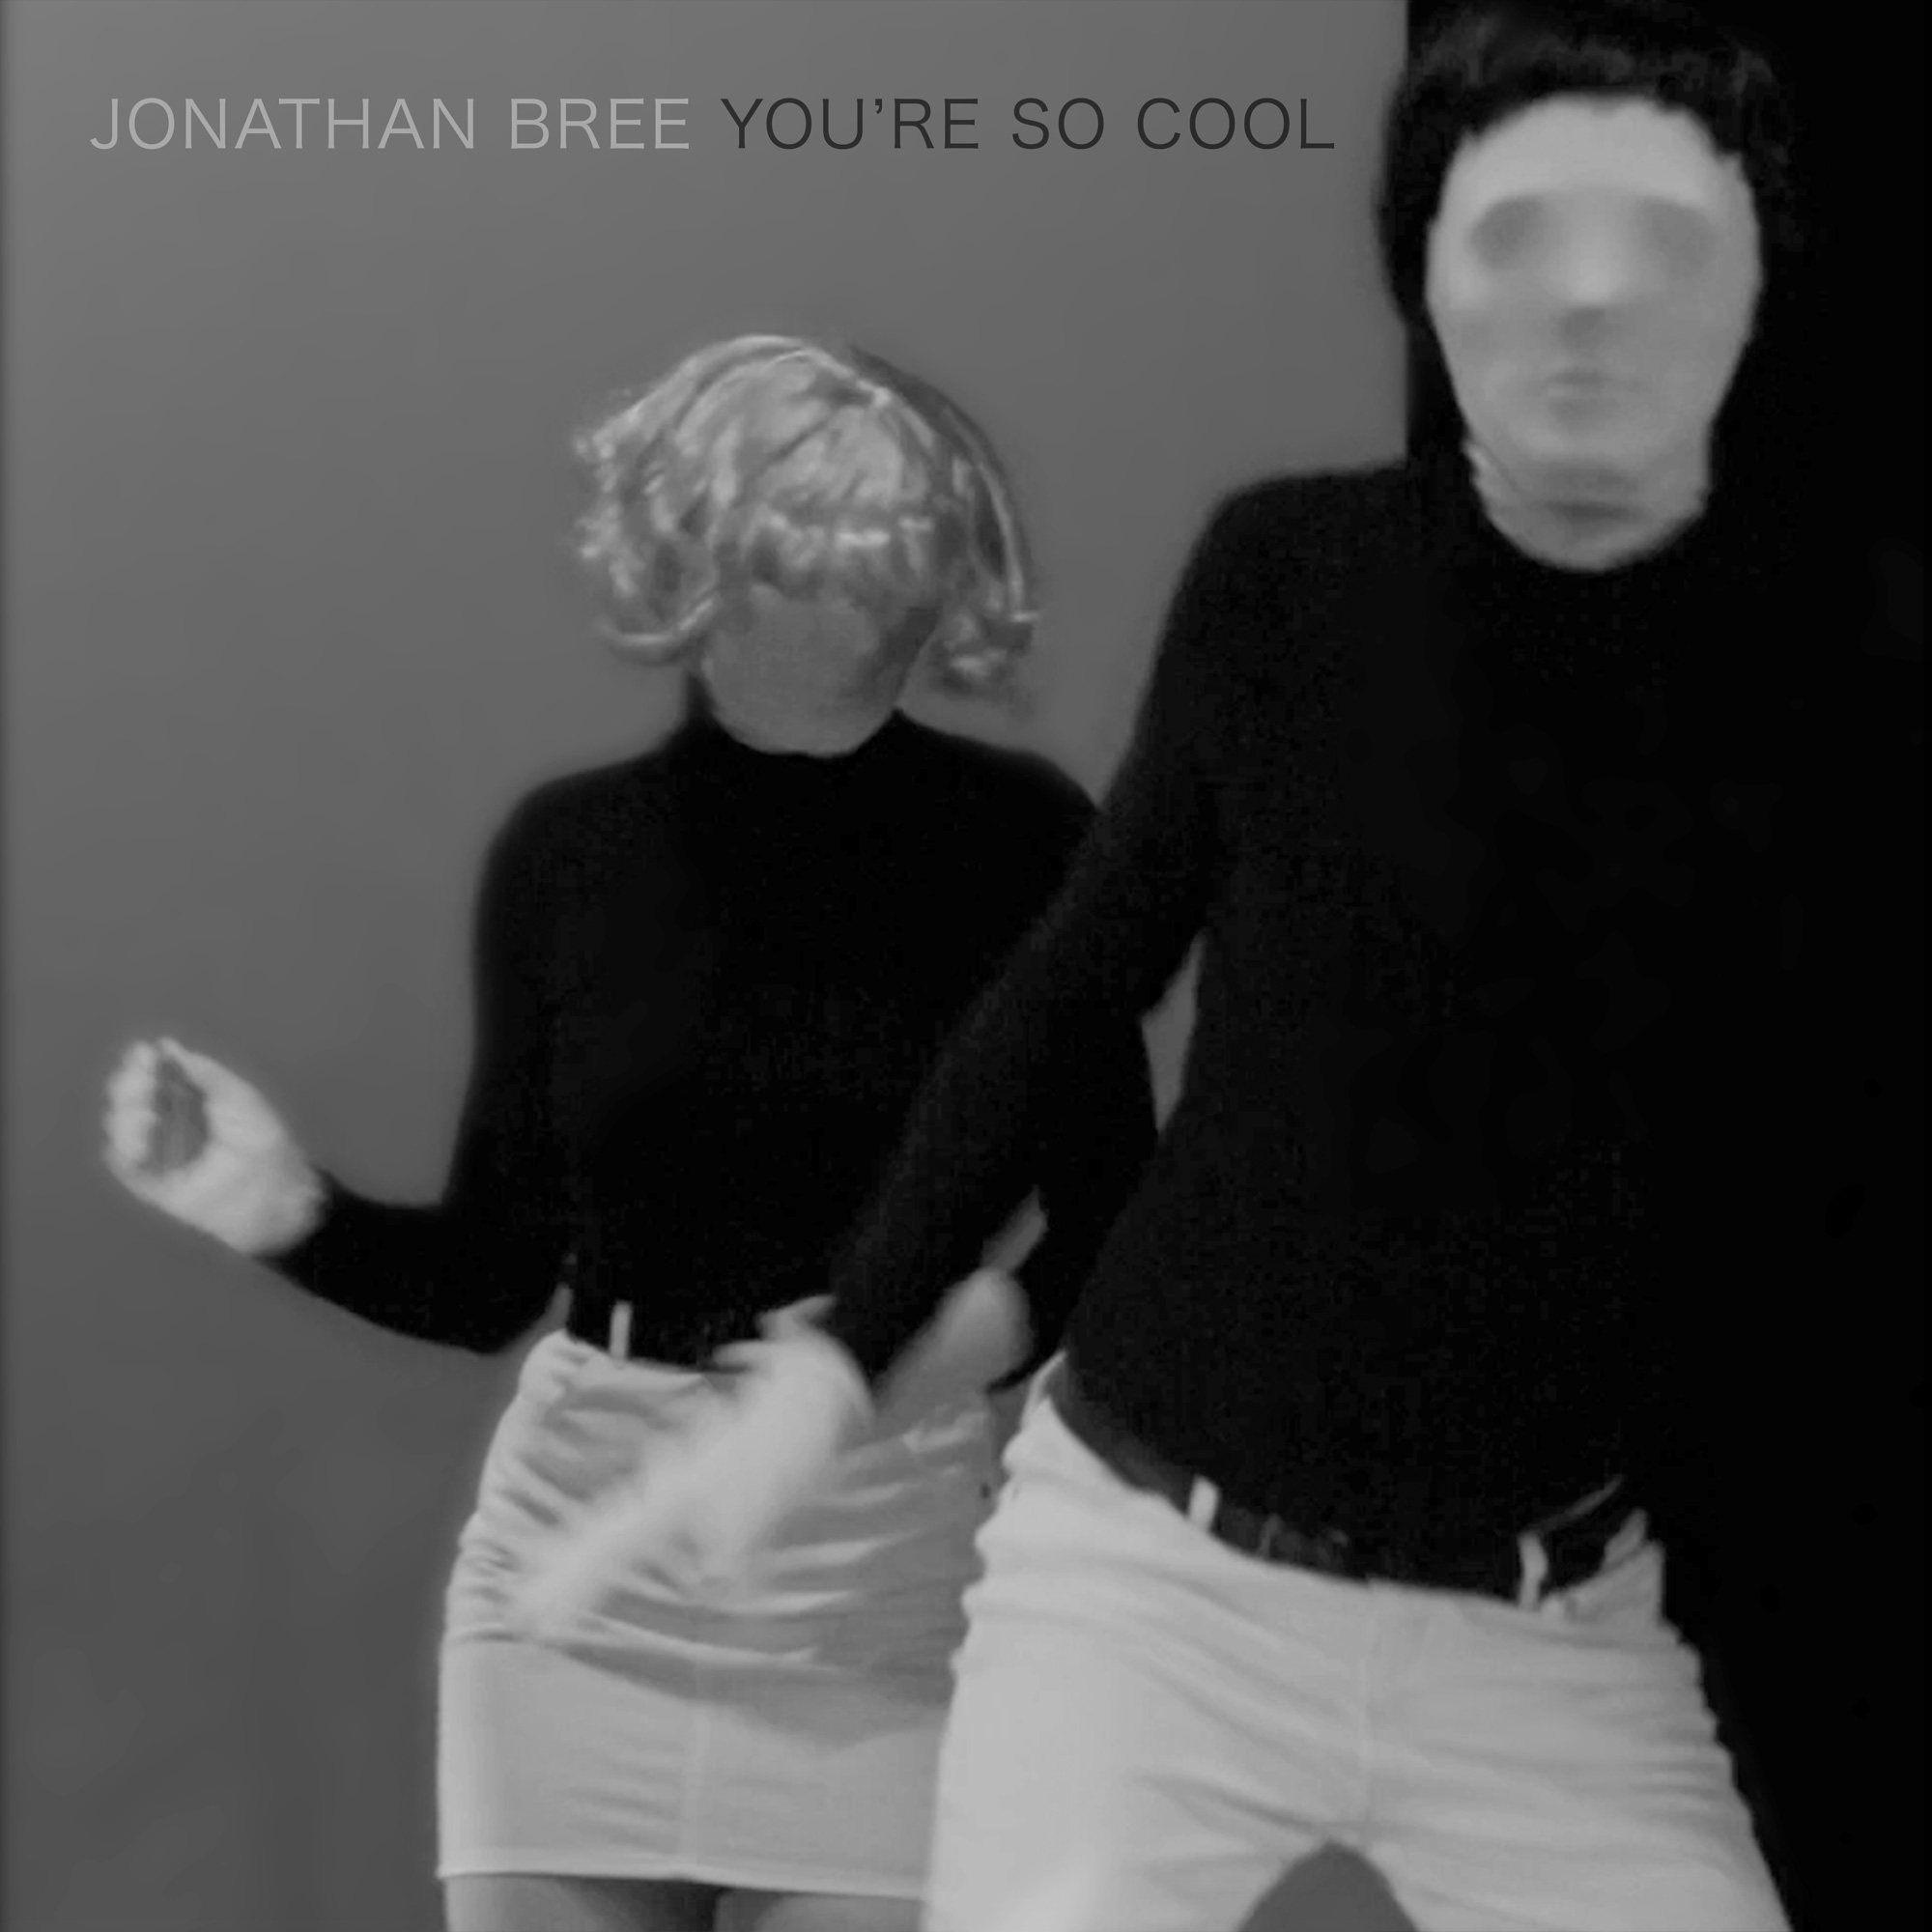 Jonathan Bree - You're So Cool/Say You Love Me Too